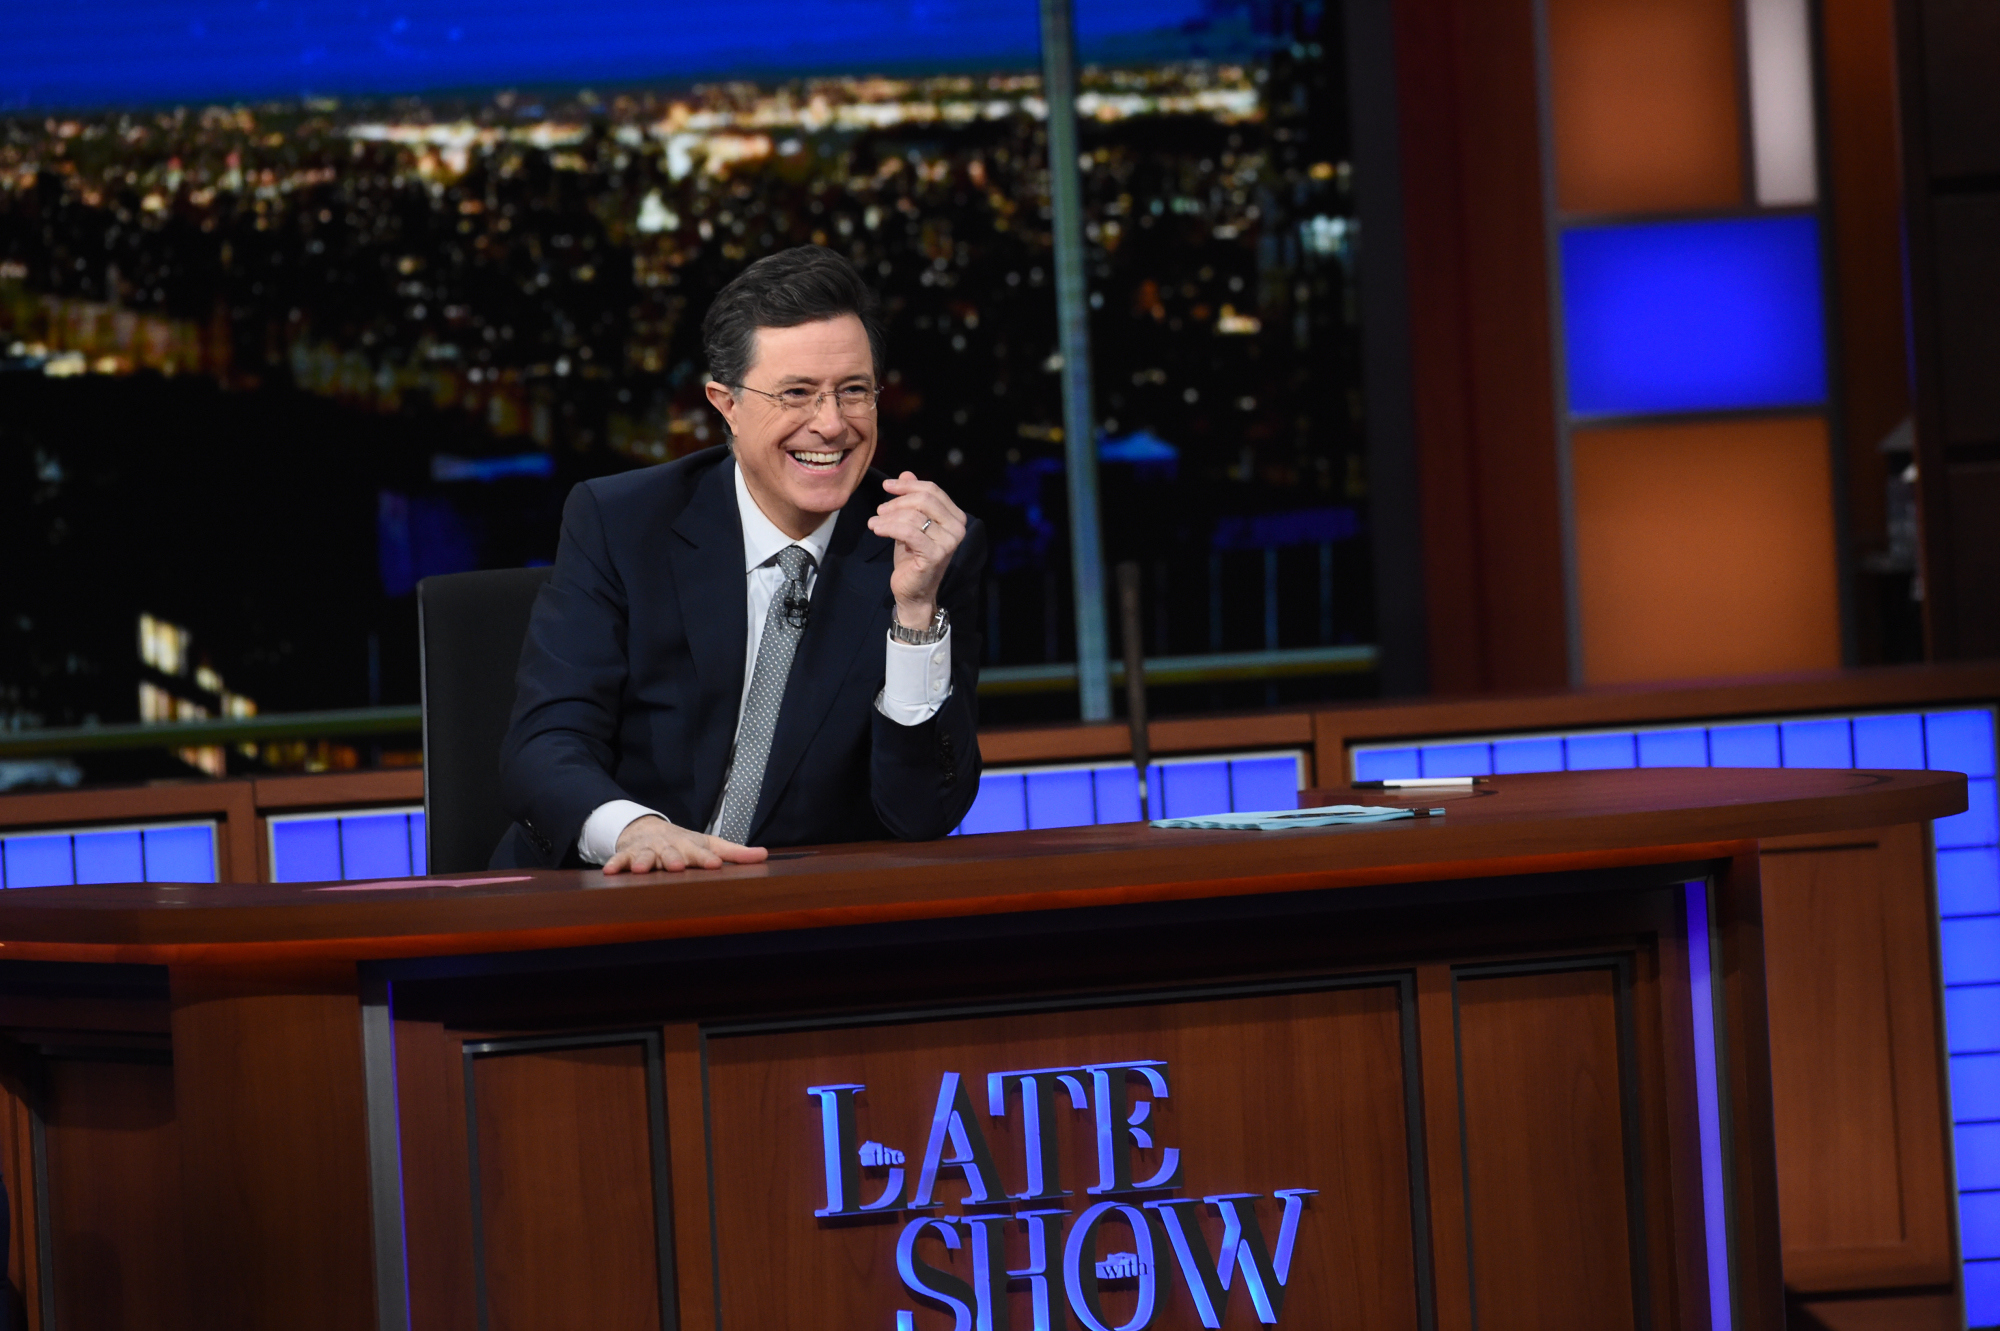 Stephen Colbert on The Late Show, Feb. 7, 2016 on the CBS Television Network.